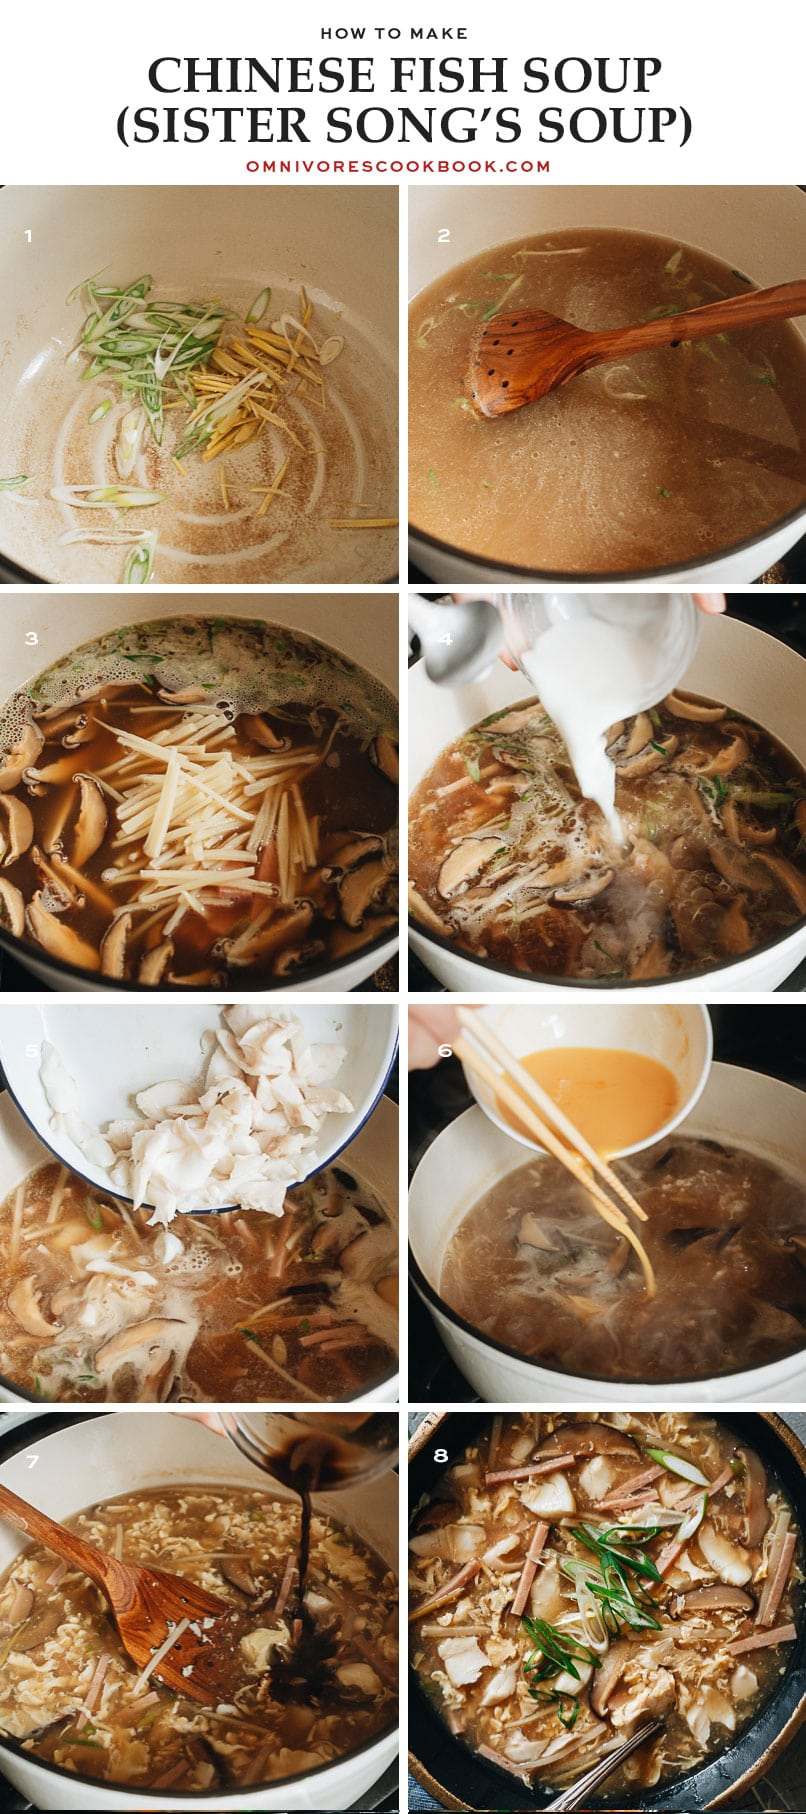 Step-by-step photos for preparing hot and sour fish soup